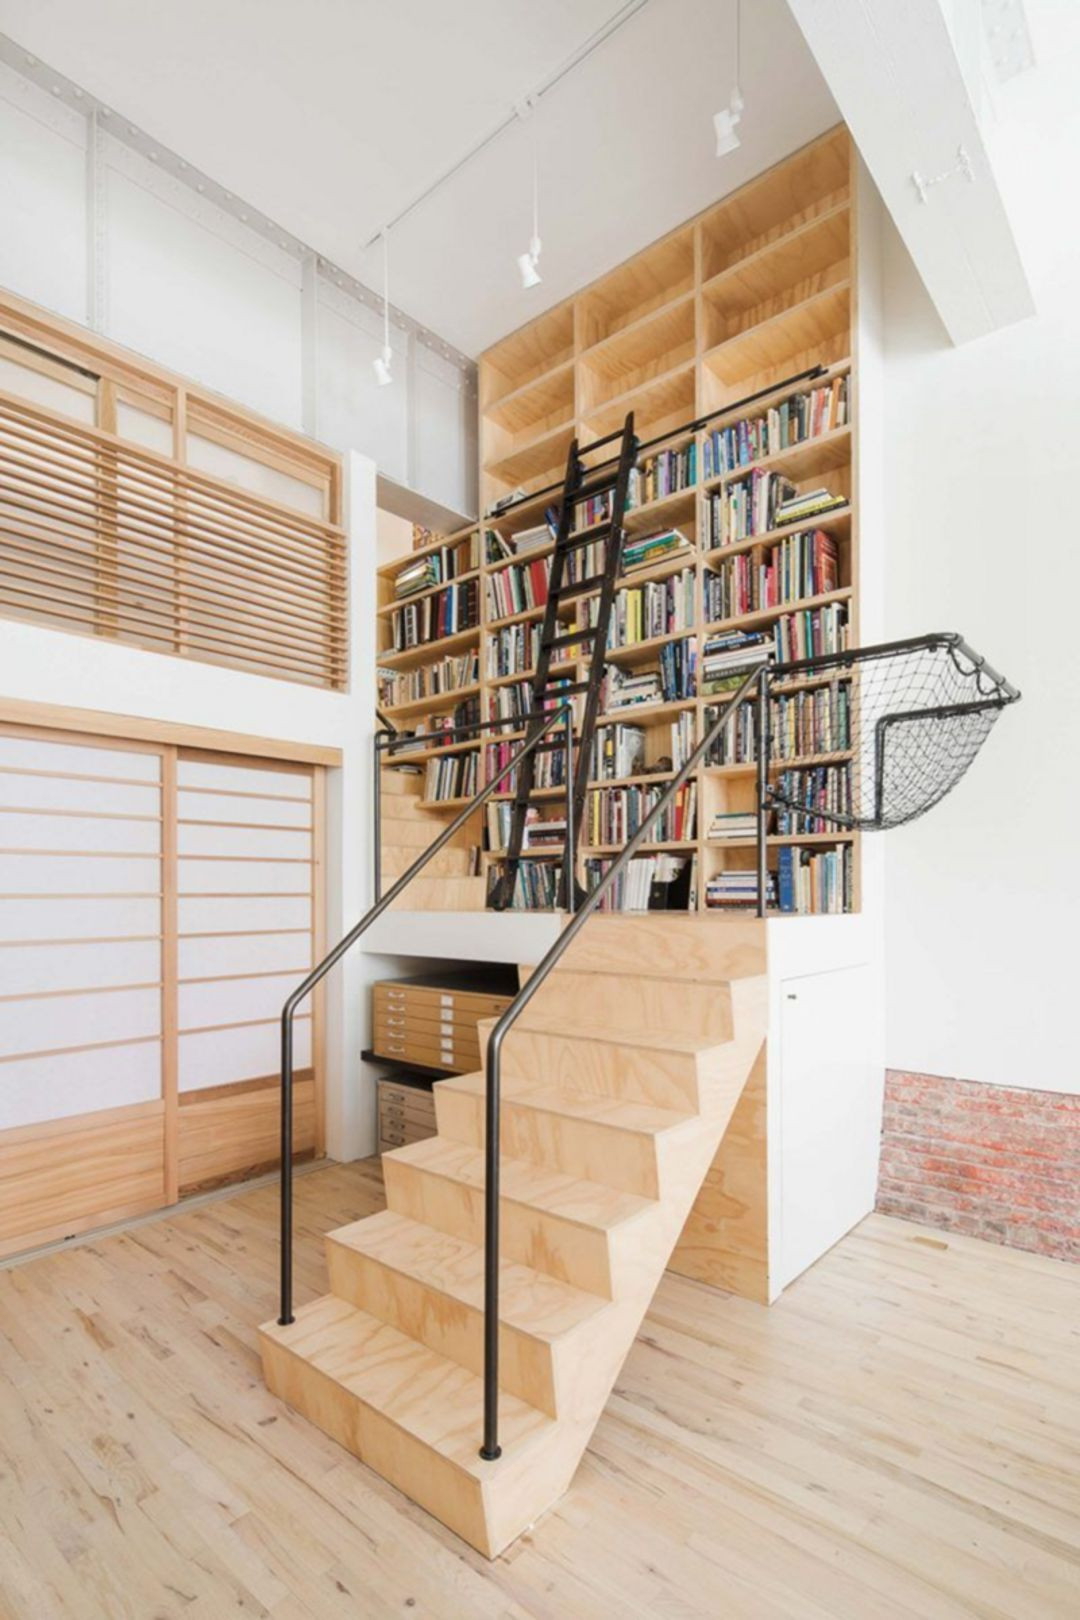 Home Library Loft: 25 Cozy Small Home Library Design Ideas That Will Blow